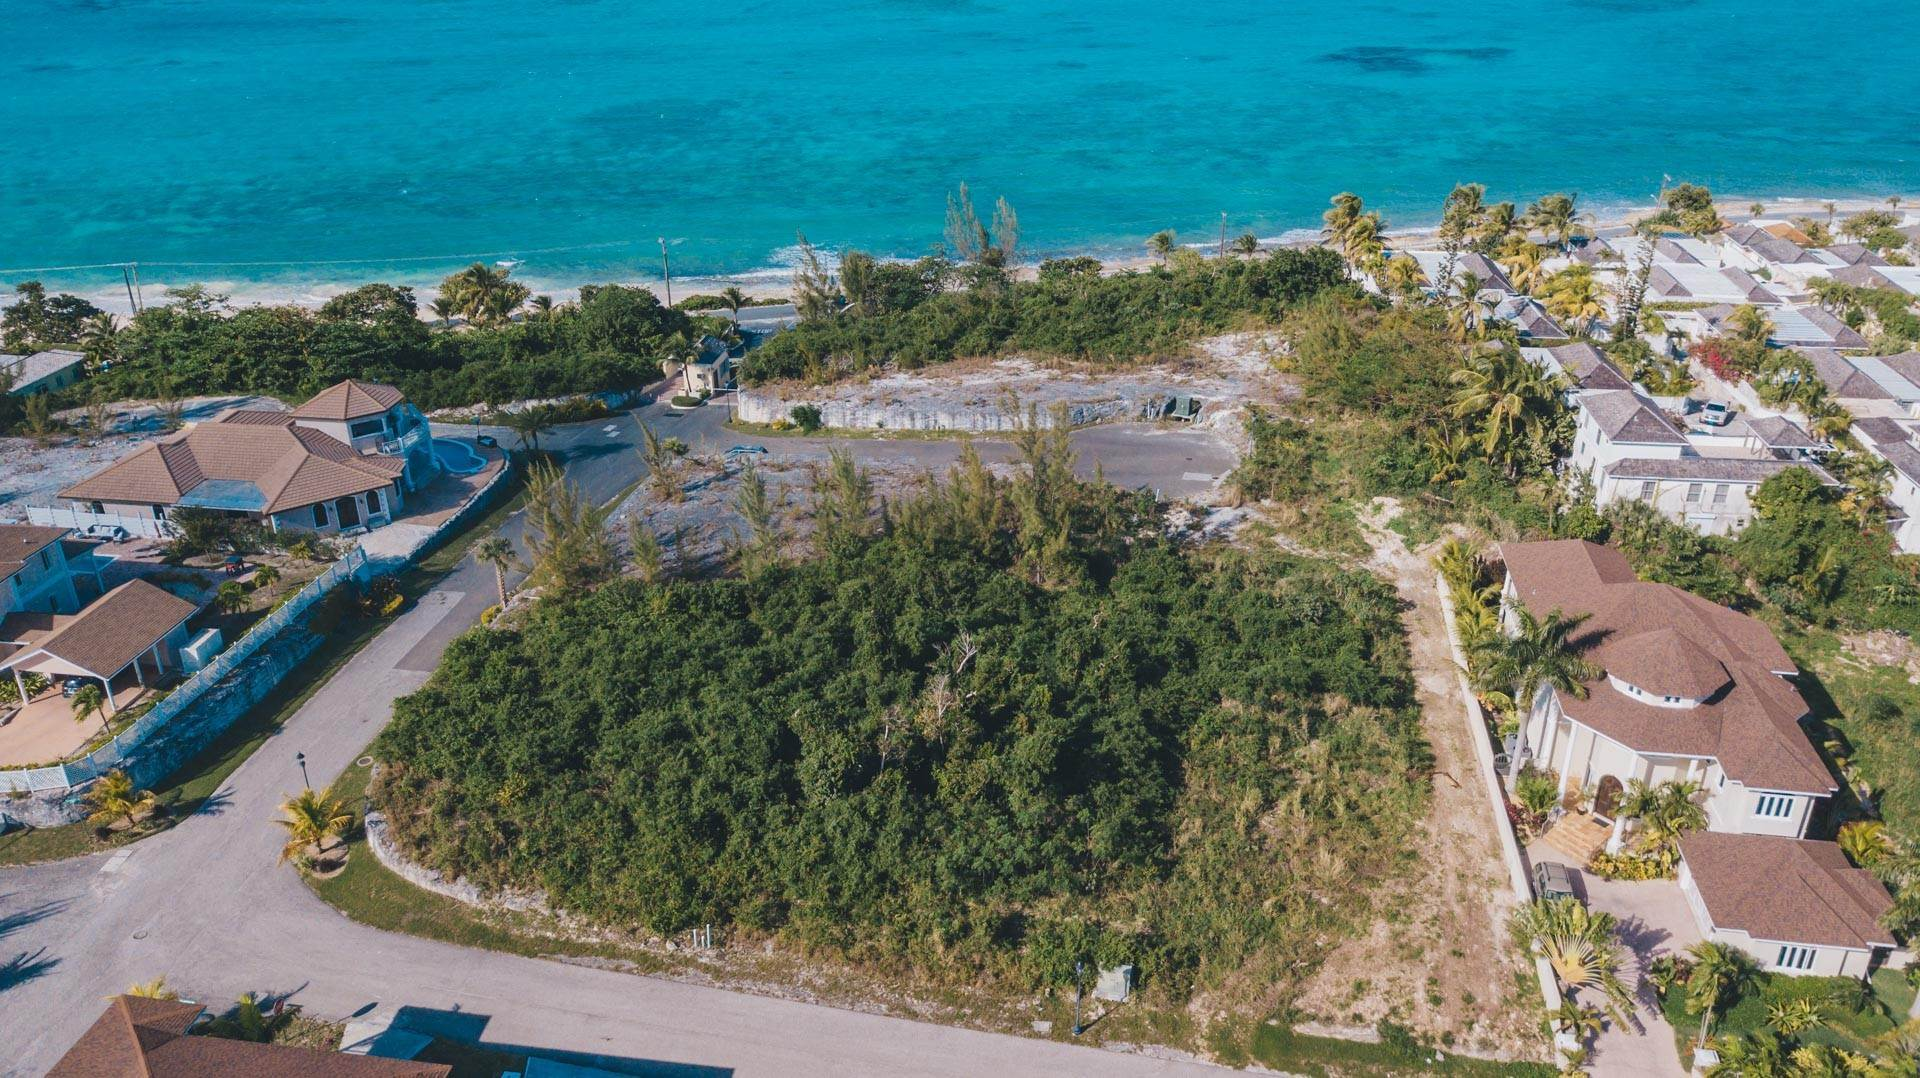 Land for Sale at Hilltop View Lot at Saffron Hill Orange Hill, Nassau And Paradise Island, Bahamas